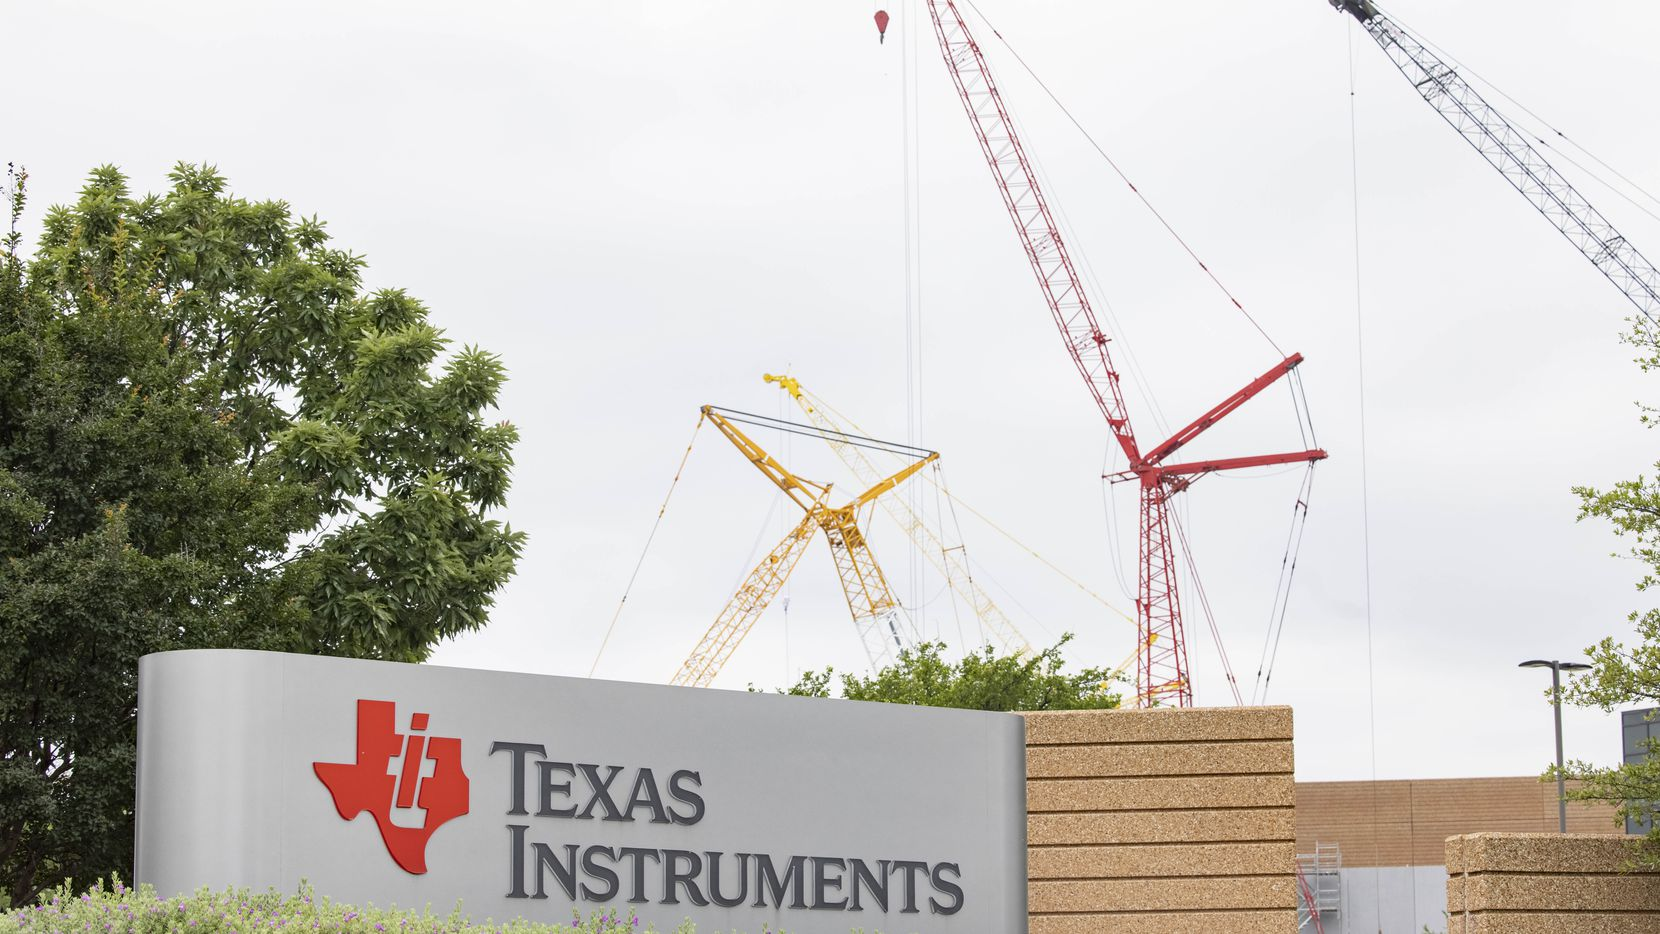 The entrance to the Texas Instruments plant in Richardson.